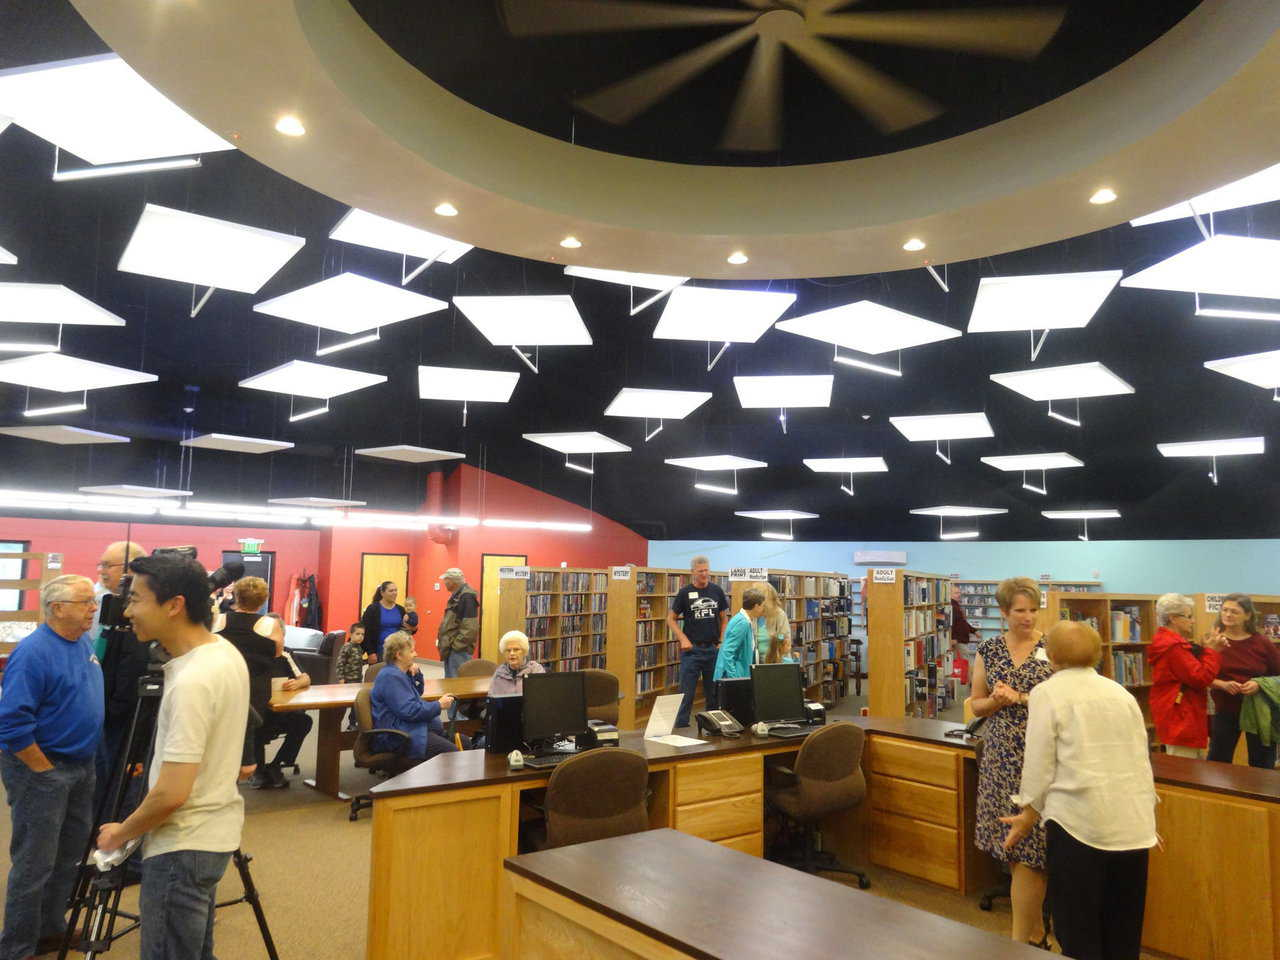 Patrons view library at open house